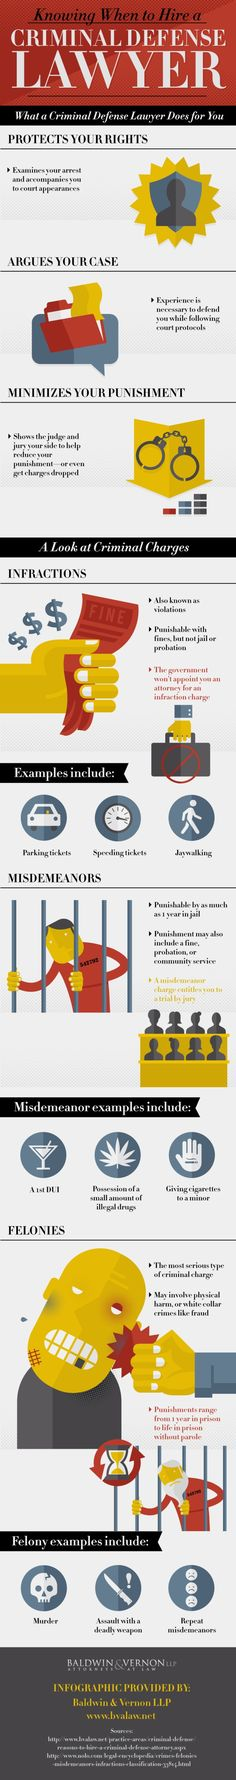 There are three different kinds of criminal charges: infractions, misdemeanors, and felonies. You can read about the differences between these charges and how criminal defense lawyers can help on this KC Metro Area criminal defense law firm infographic.